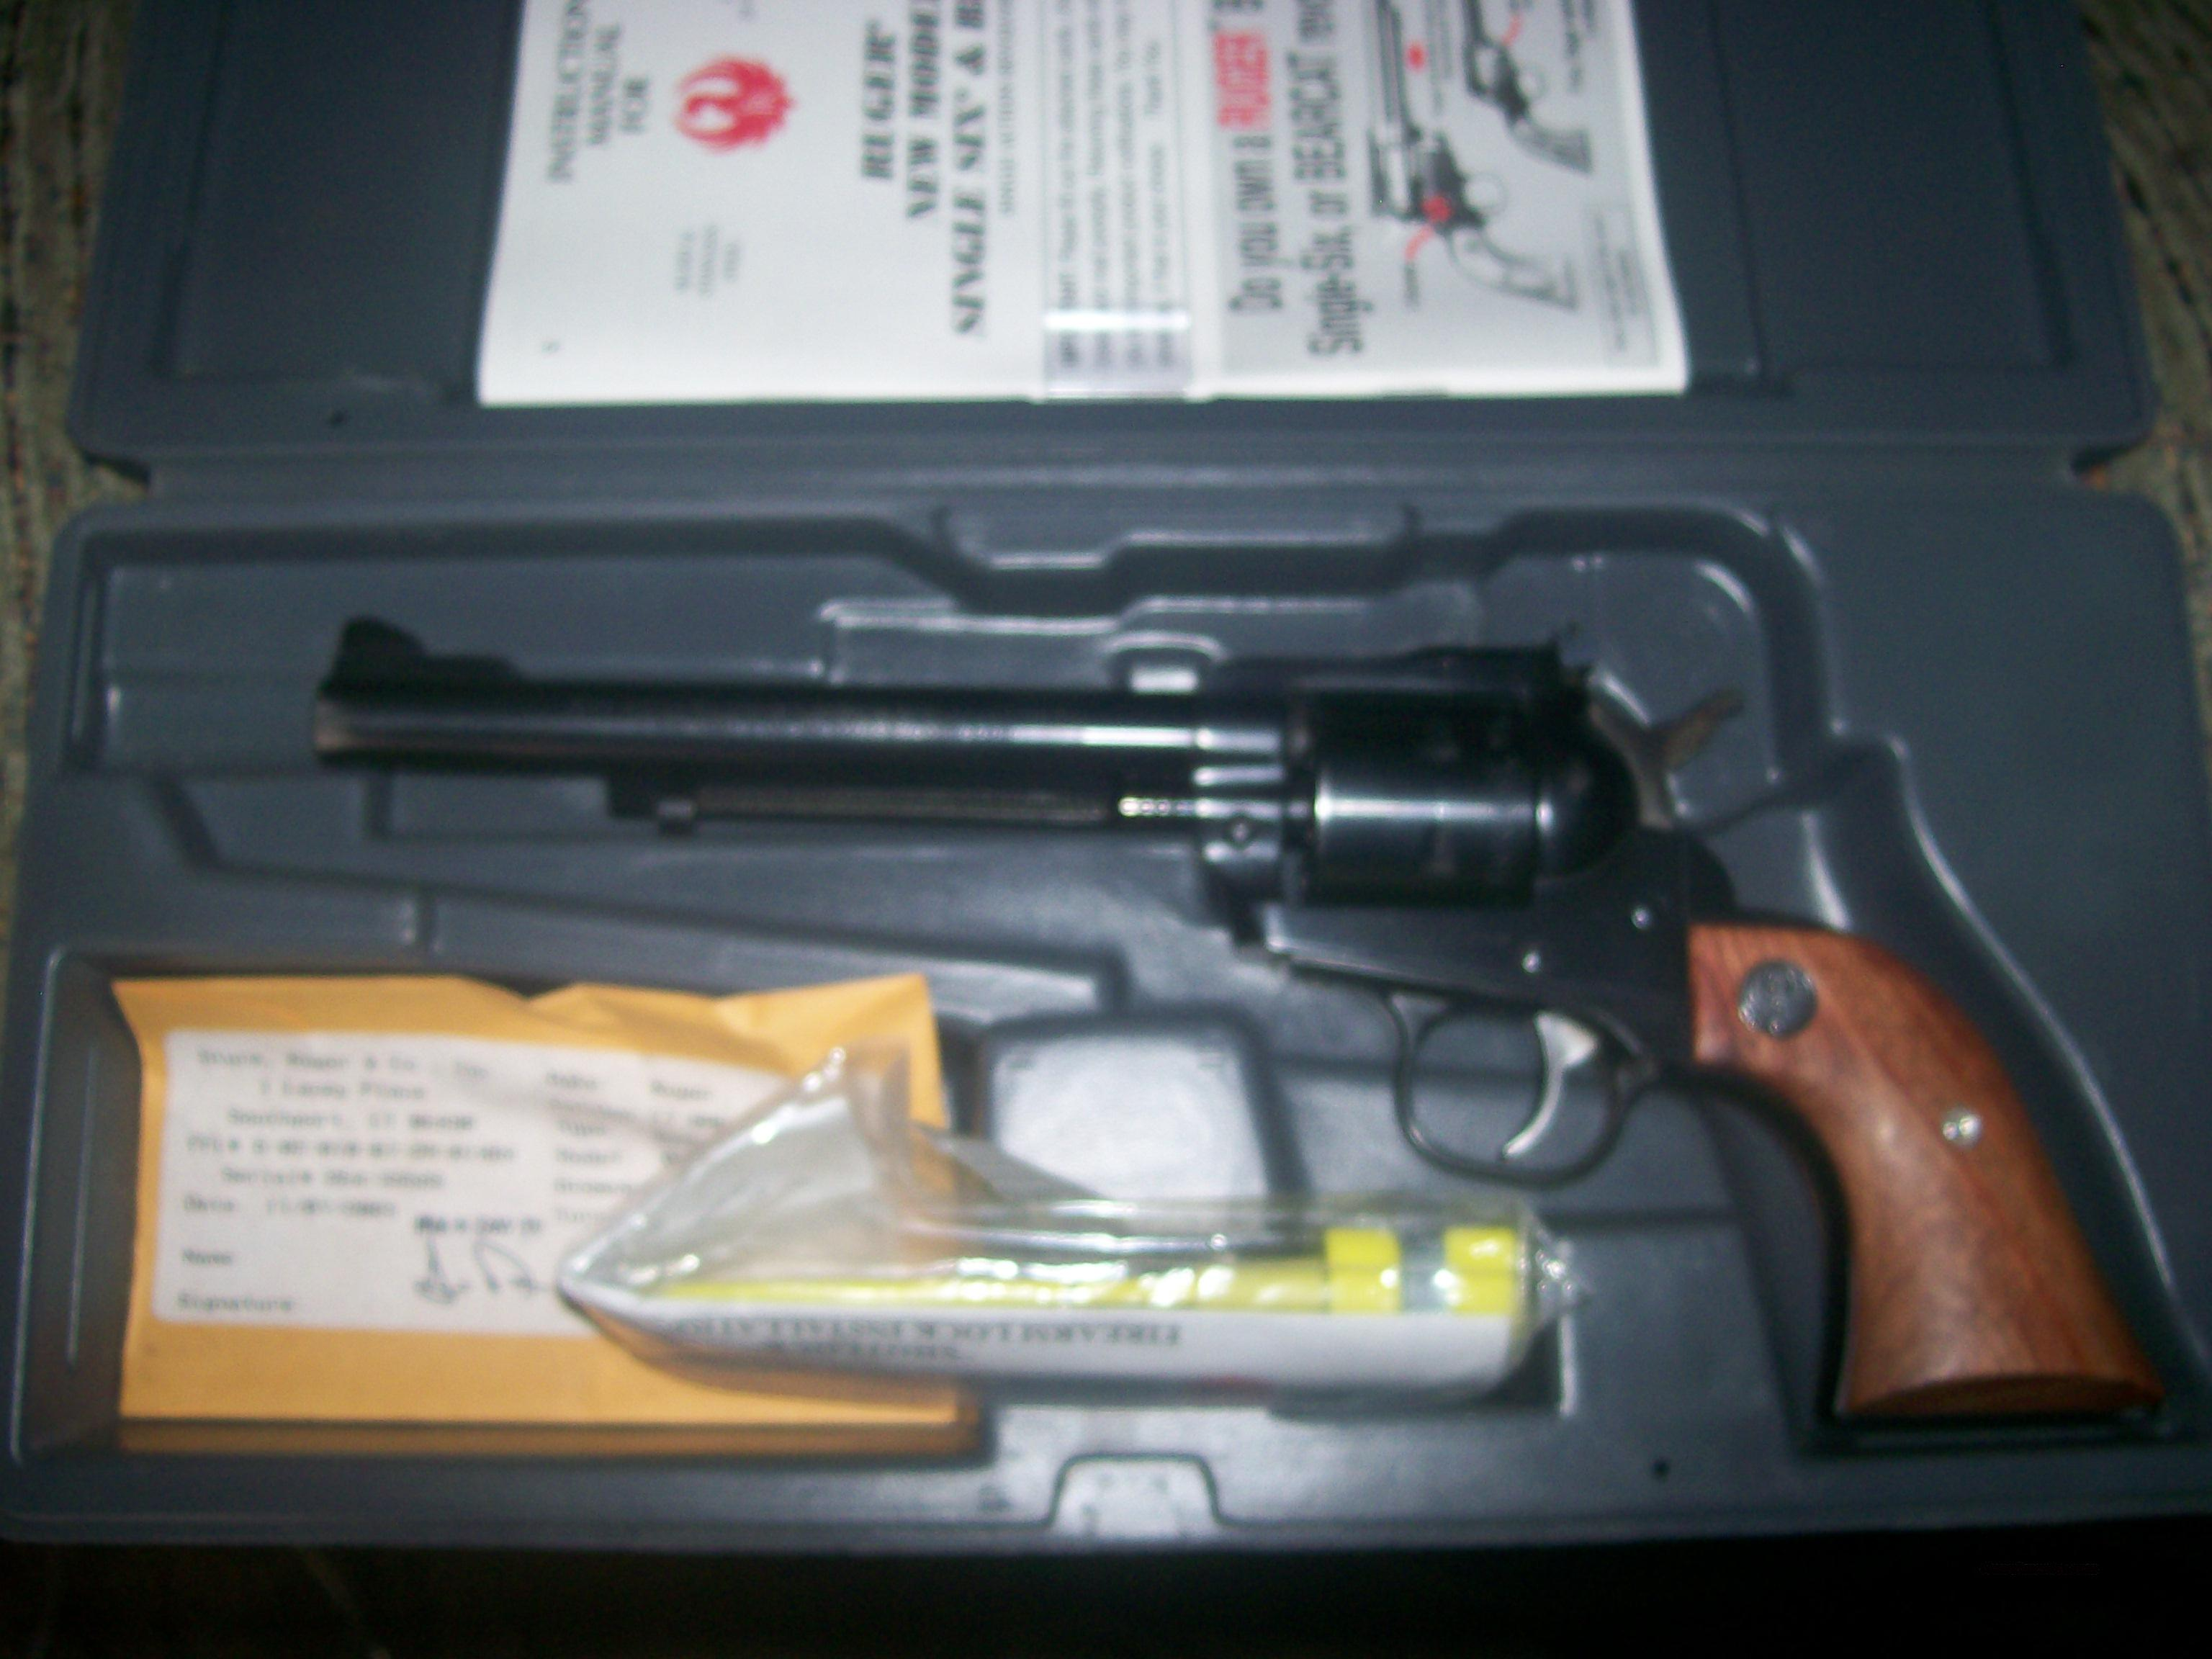 Ruger single six 17 cal.  Guns > Pistols > Ruger Single Action Revolvers > Single Six Type